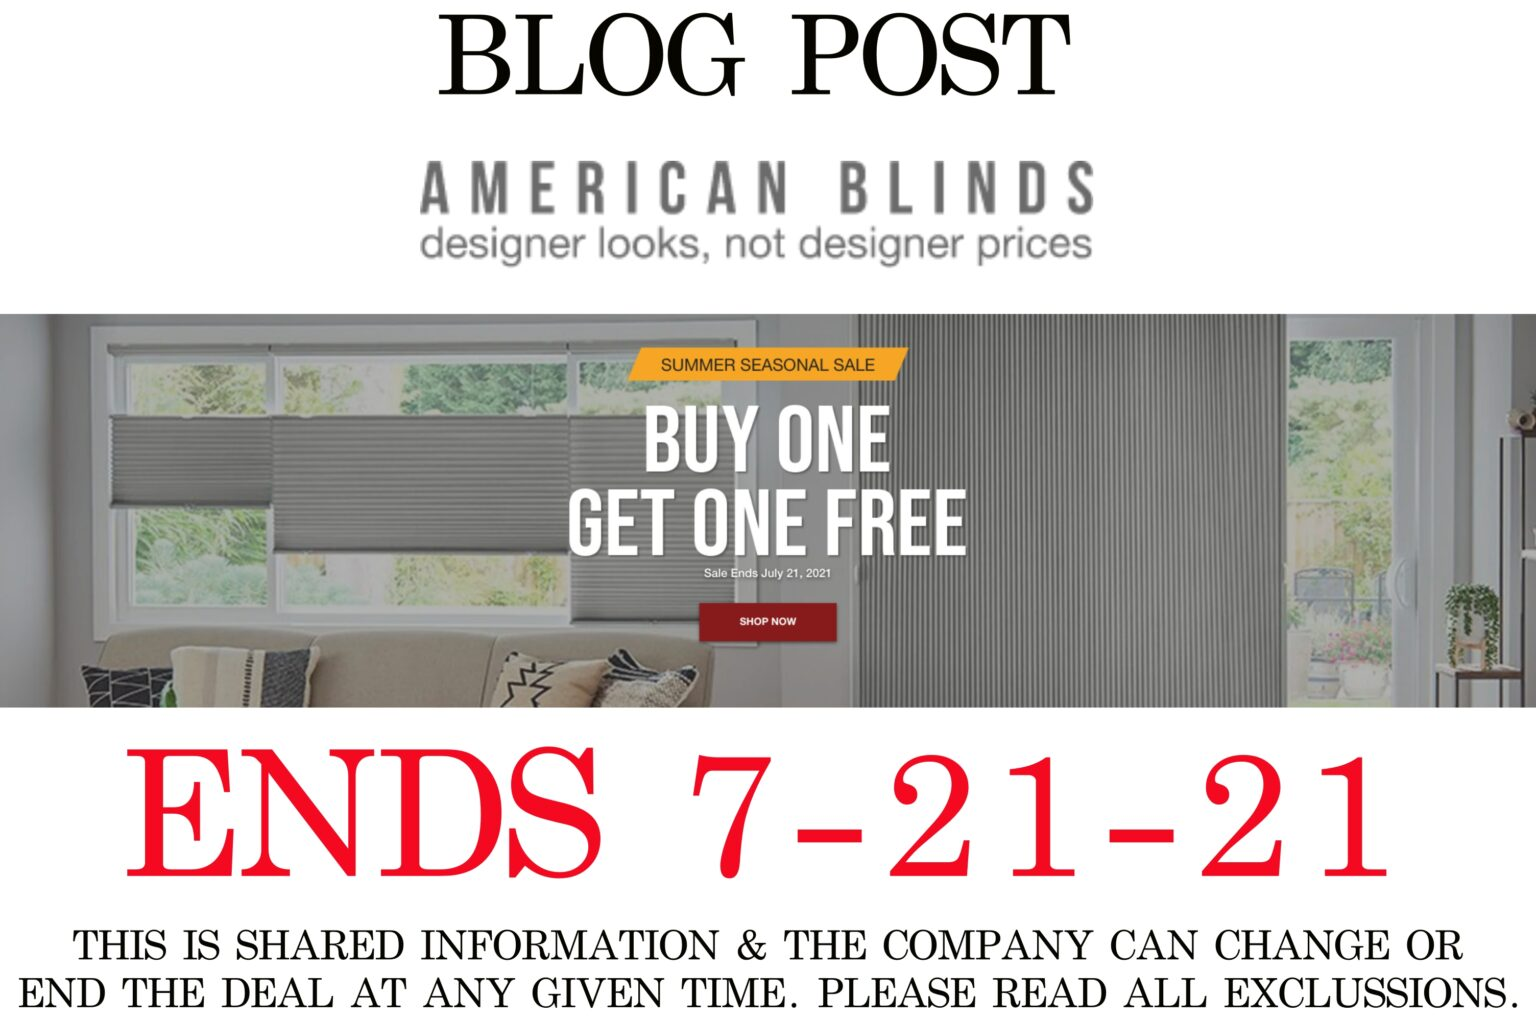 AMERICAN BLINDS BUY 1 GET 1 FREE BLINDS ENDS 7-21-21 - Hot ...